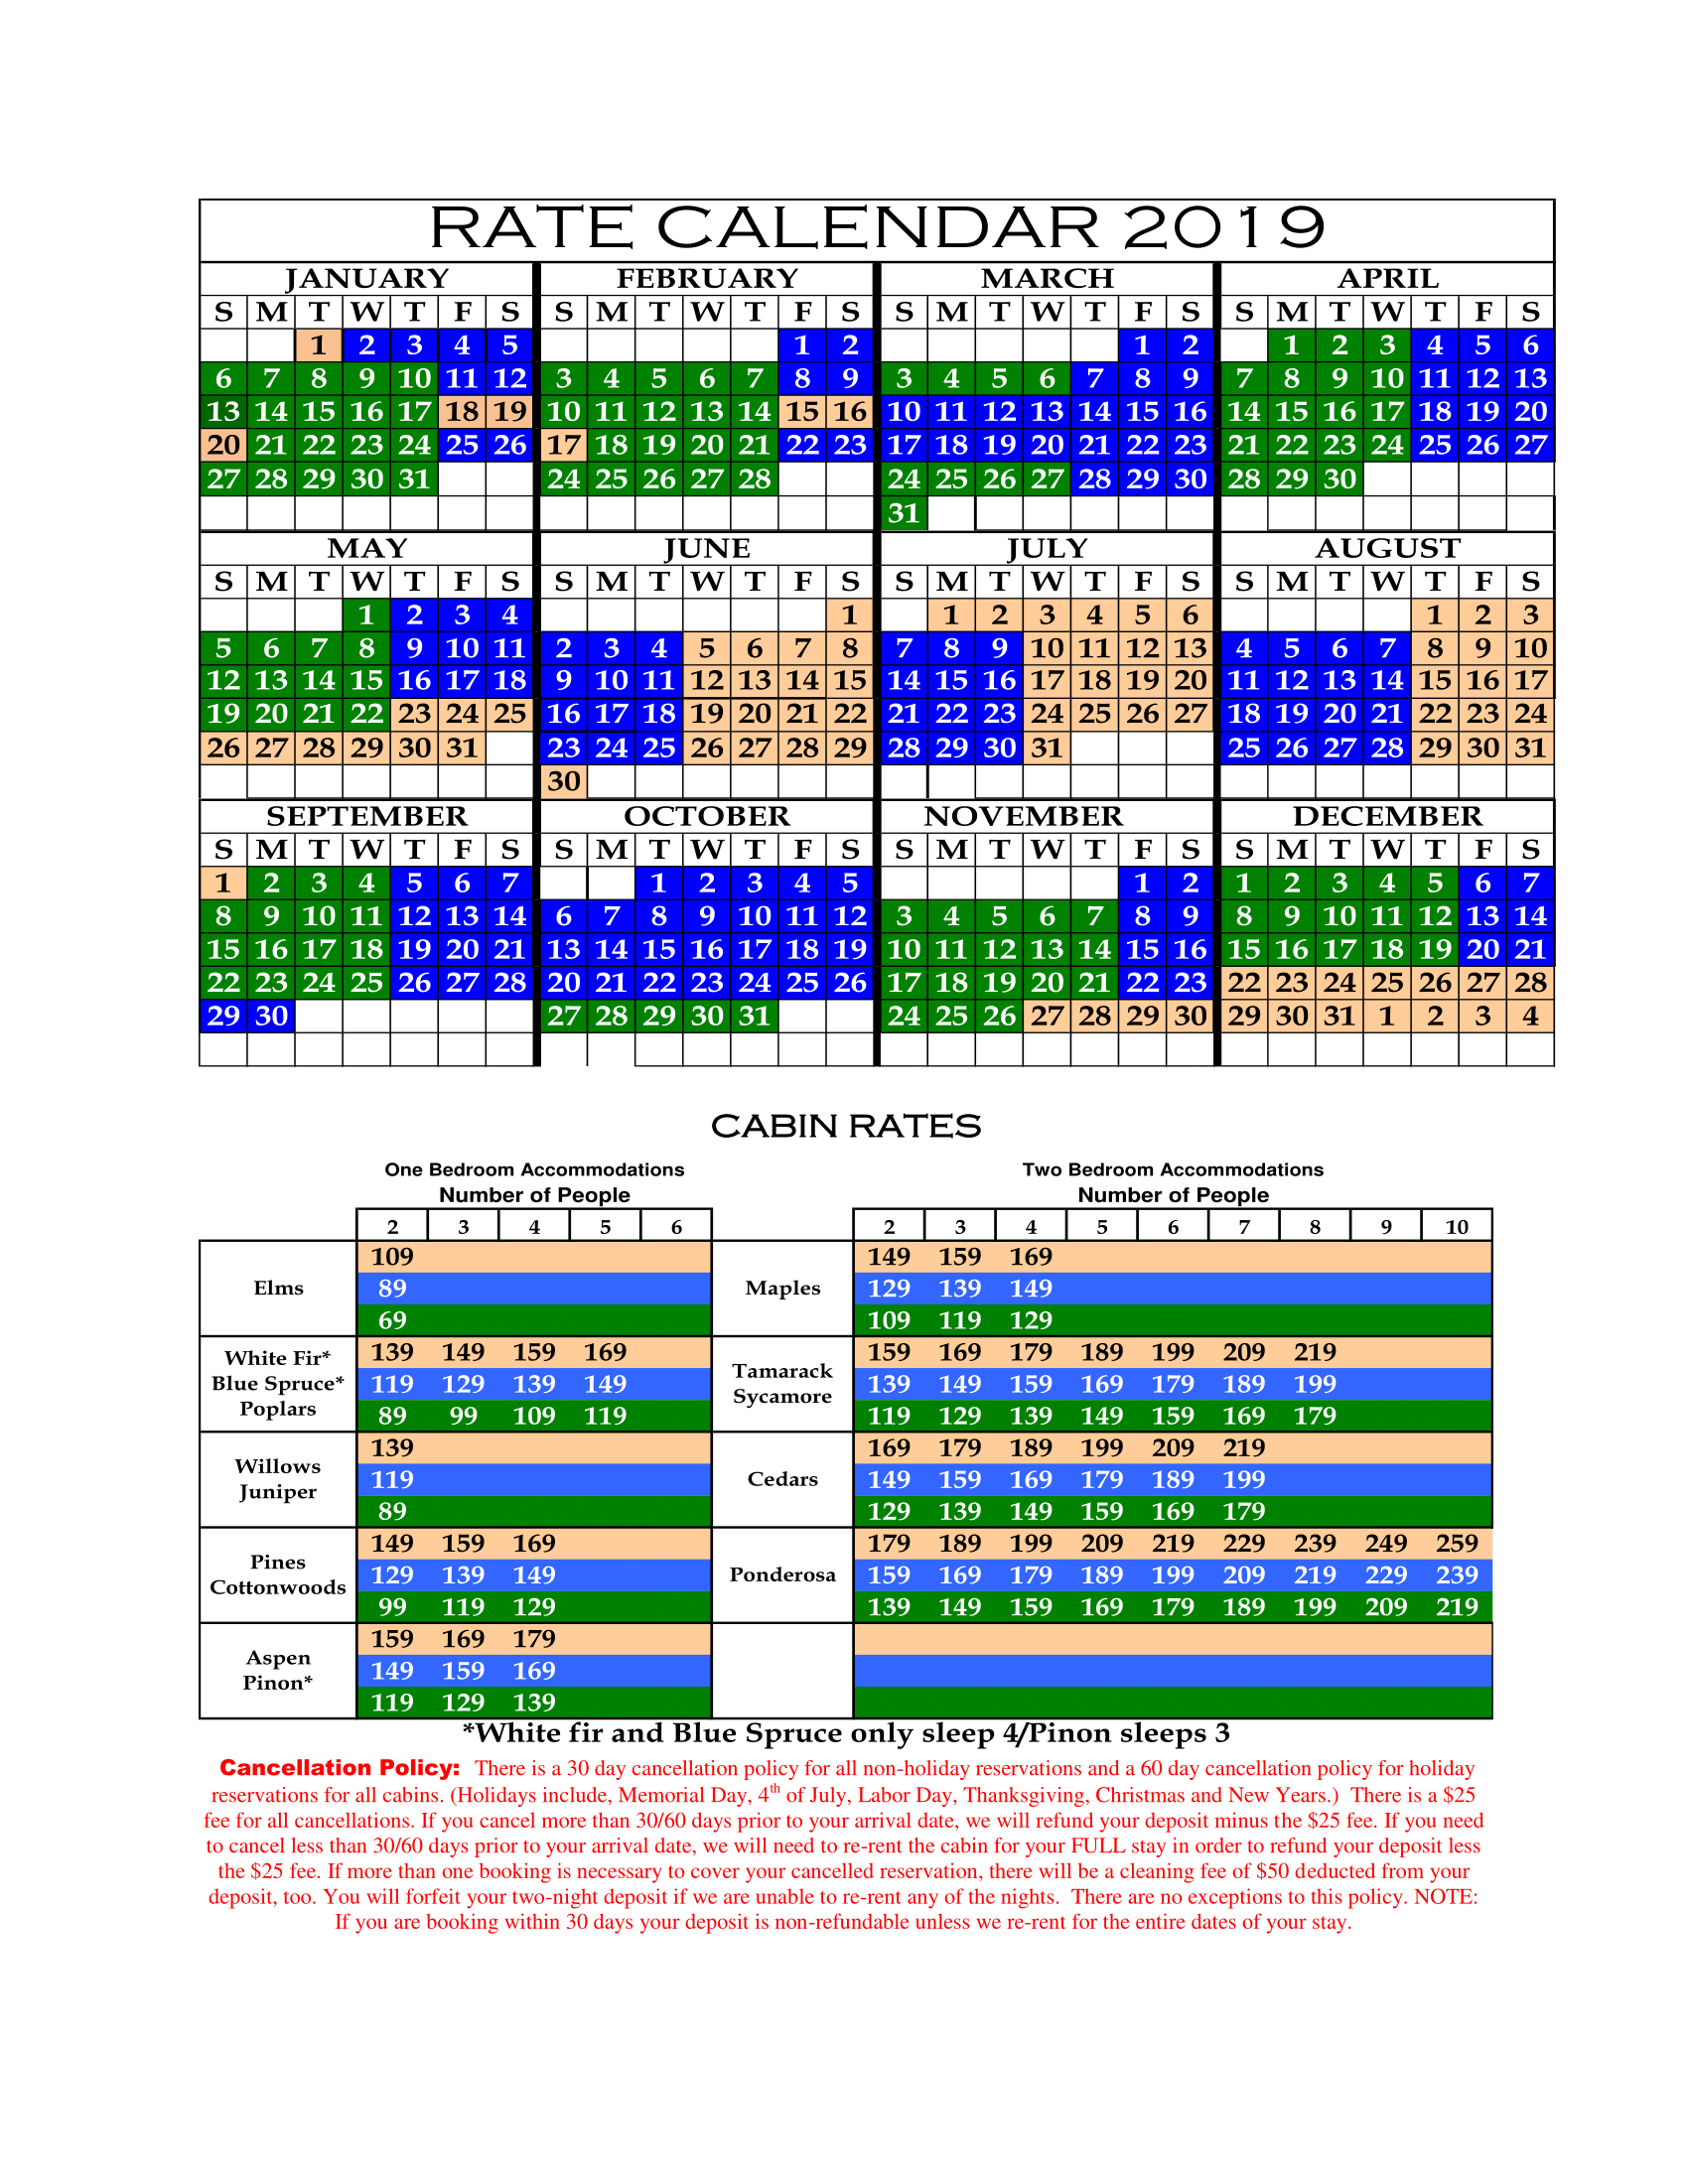 Christmas In The Oaks 2019.Reserve Rates Policies Lazy Oaks Page 4580557603